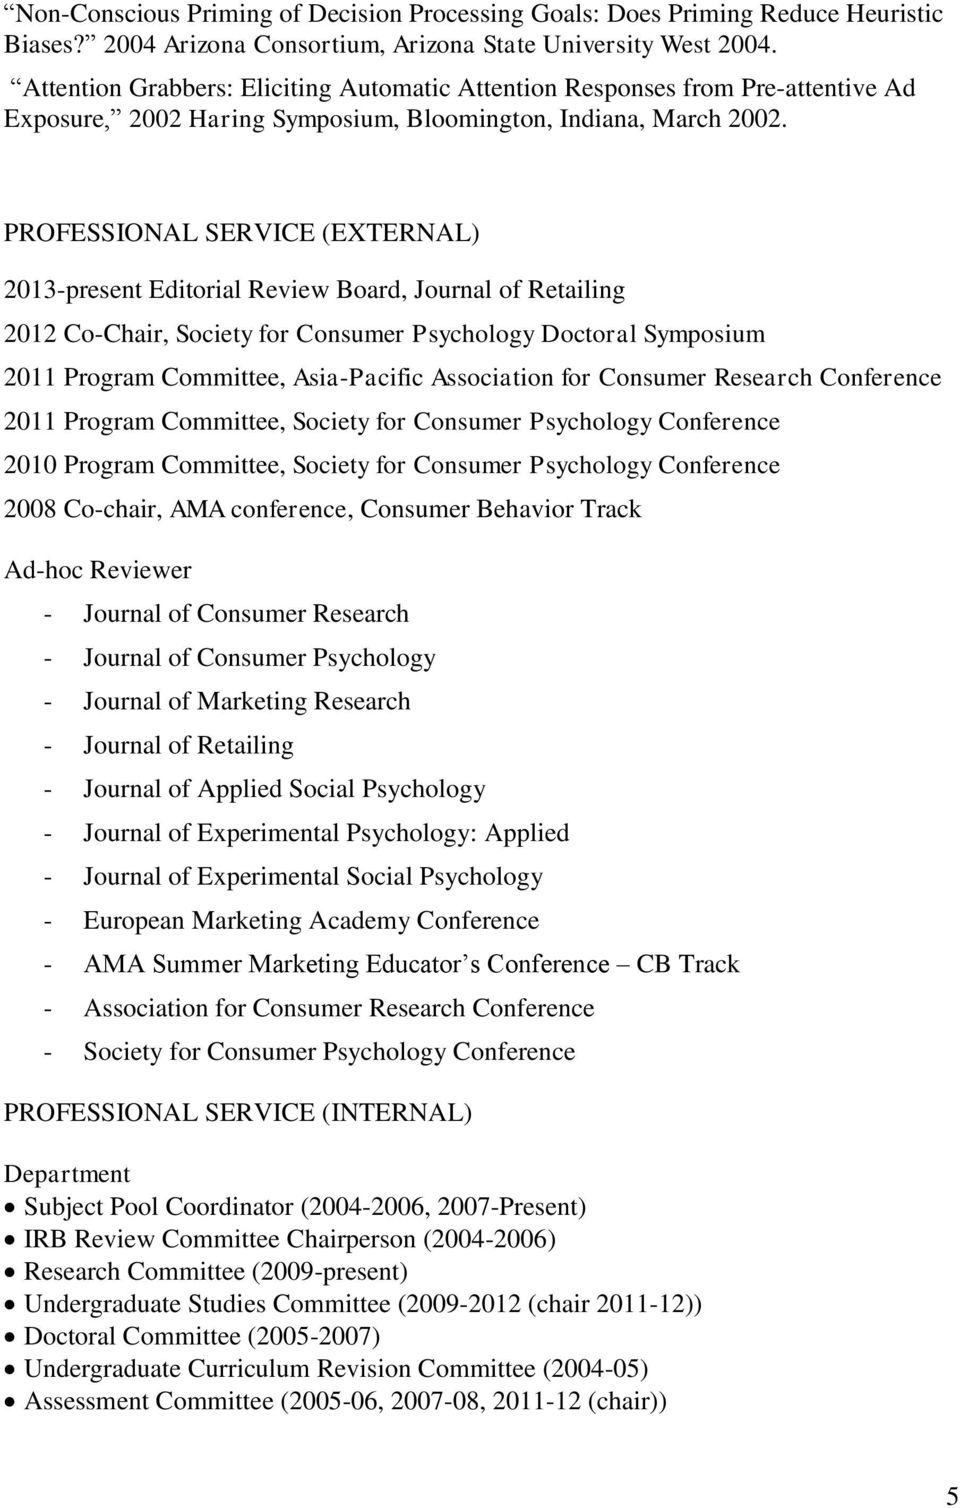 PROFESSIONAL SERVICE (EXTERNAL) 2013-present Editorial Review Board, Journal of Retailing 2012 Co-Chair, Society for Consumer Psychology Doctoral Symposium 2011 Program Committee, Asia-Pacific